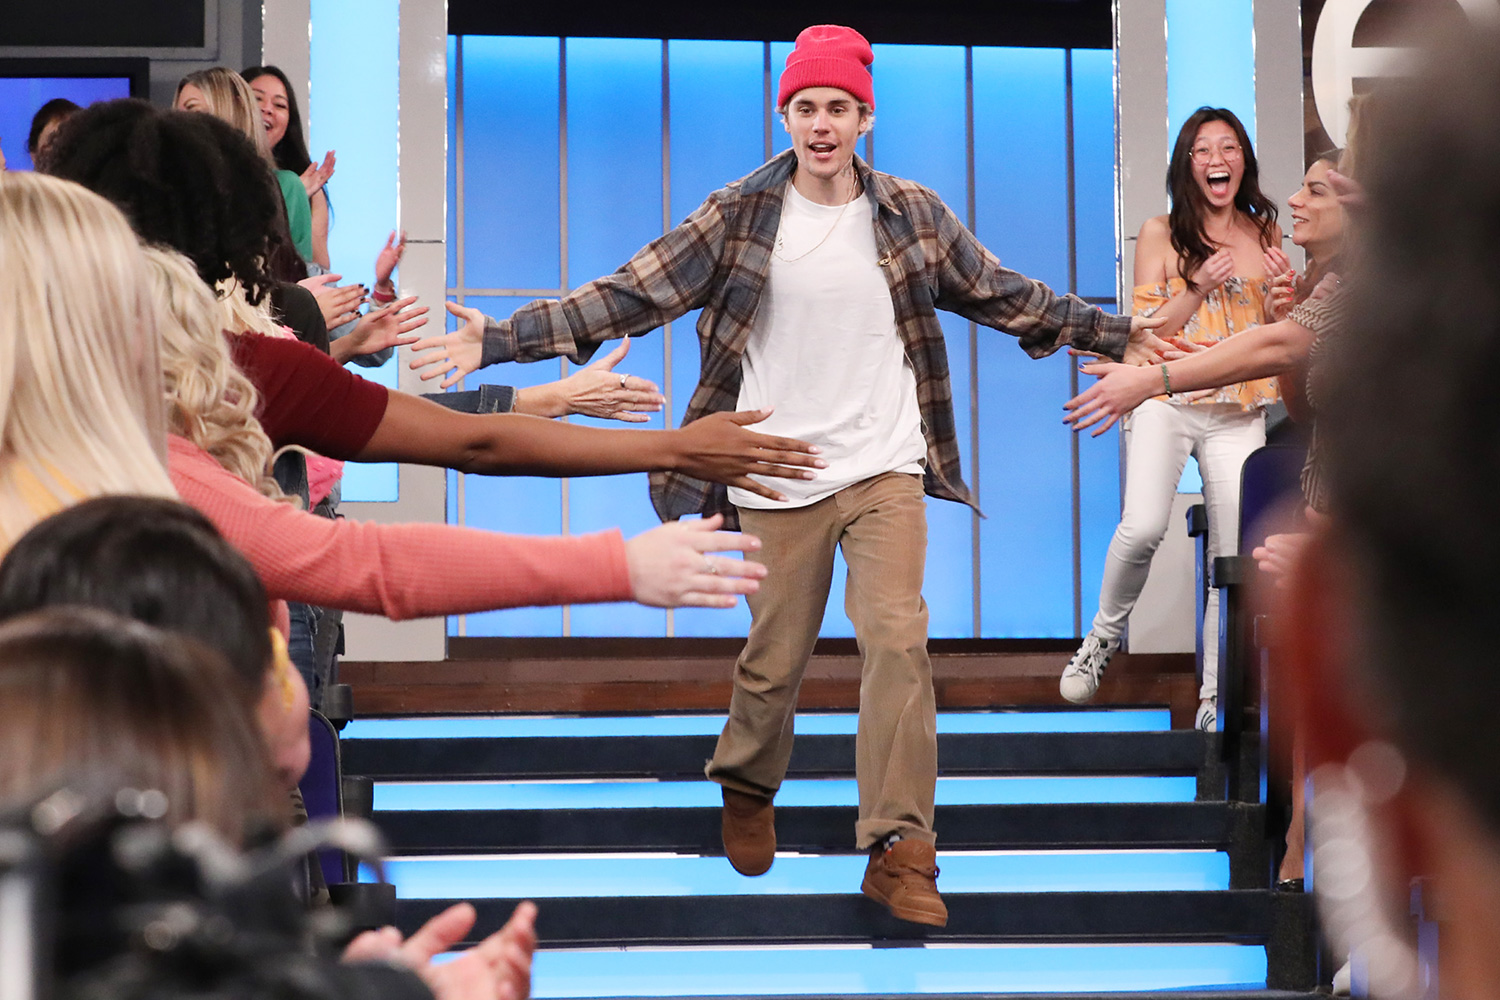 """International superstar JustinBieber makes a cameo appearance on """"The Ellen DeGeneres Show"""" airing Tuesday, March 3rd, to answer some of """"Ellen's BurningQuestions."""""""